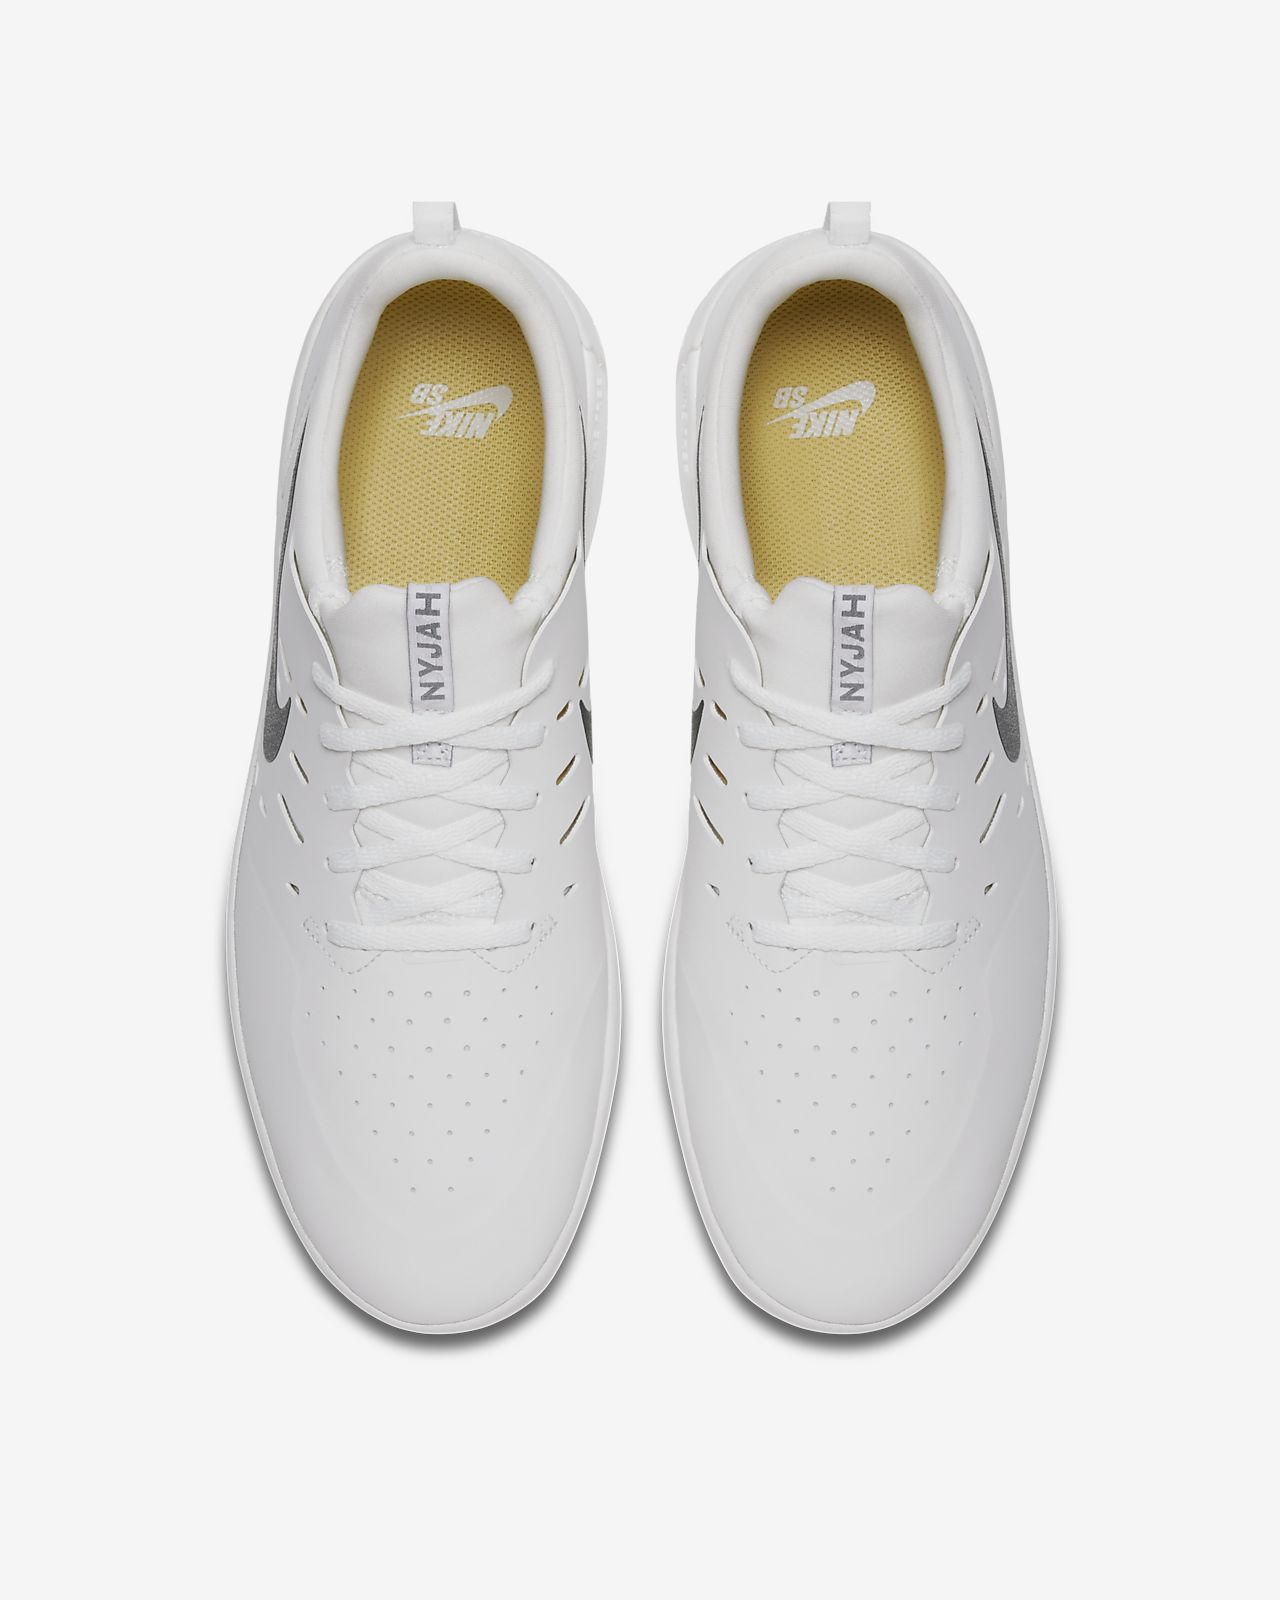 Mr.SHOES 2019 Breathable All White Lightweight Men Casual